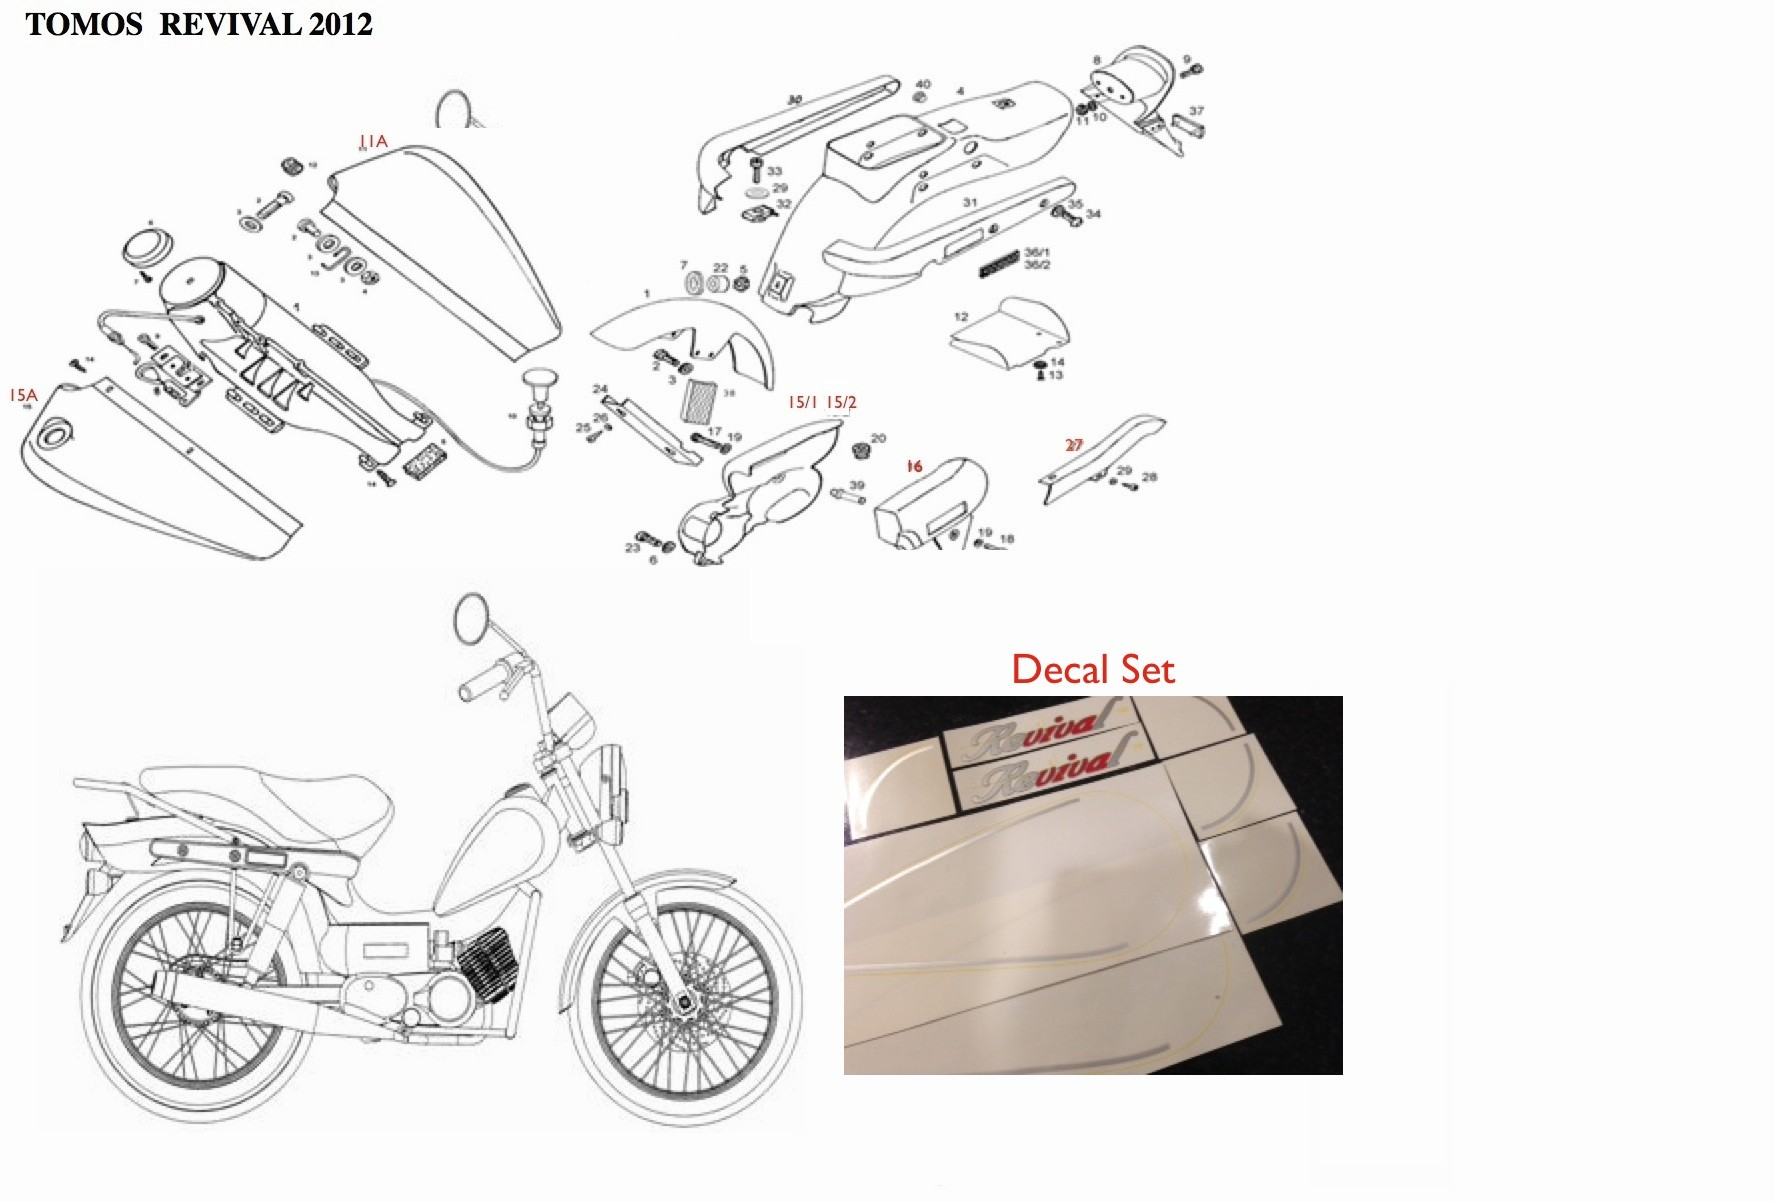 hight resolution of tomos a55 engine diagram tomos fairings side covers hardware 8 subcategories of tomos a55 engine related post suzuki forenza engine diagram